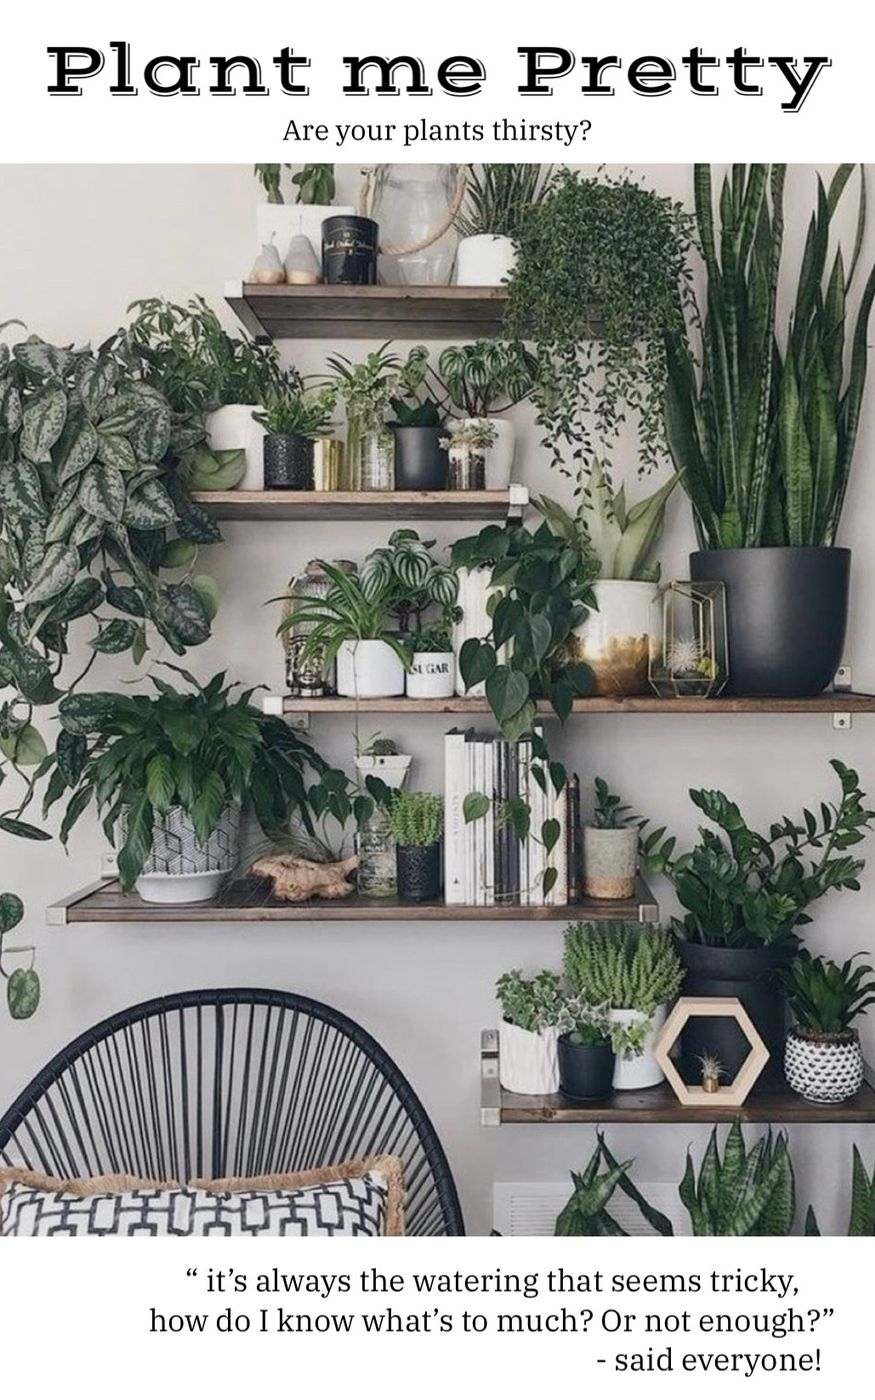 Are your plants thirsty?